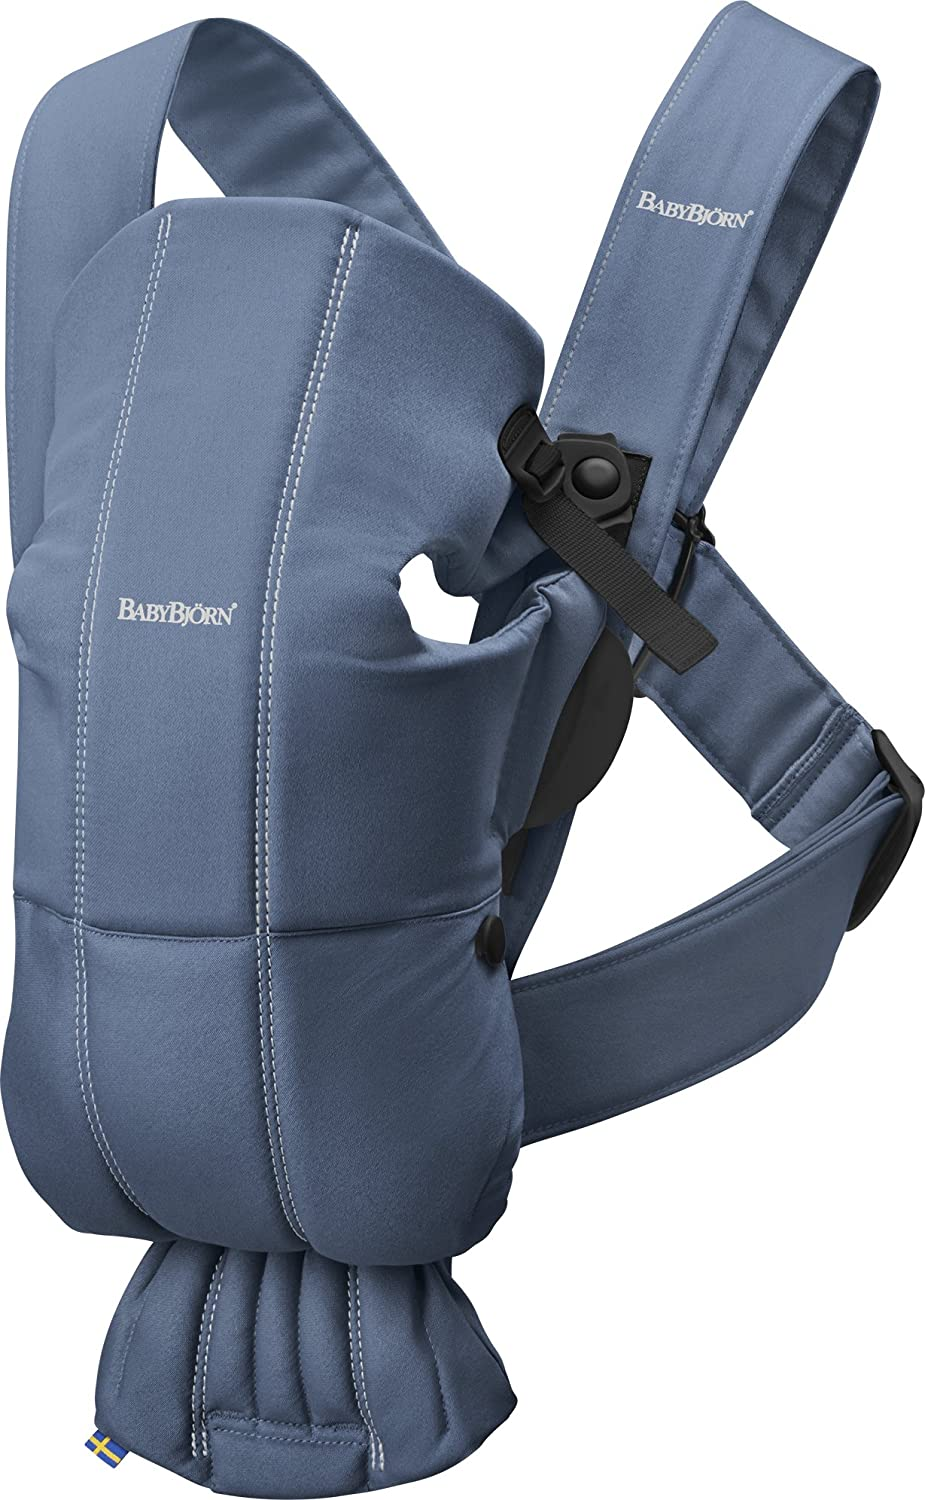 BABYBJORN Baby Carrier Mini in Cotton, Black Inc. 021056US